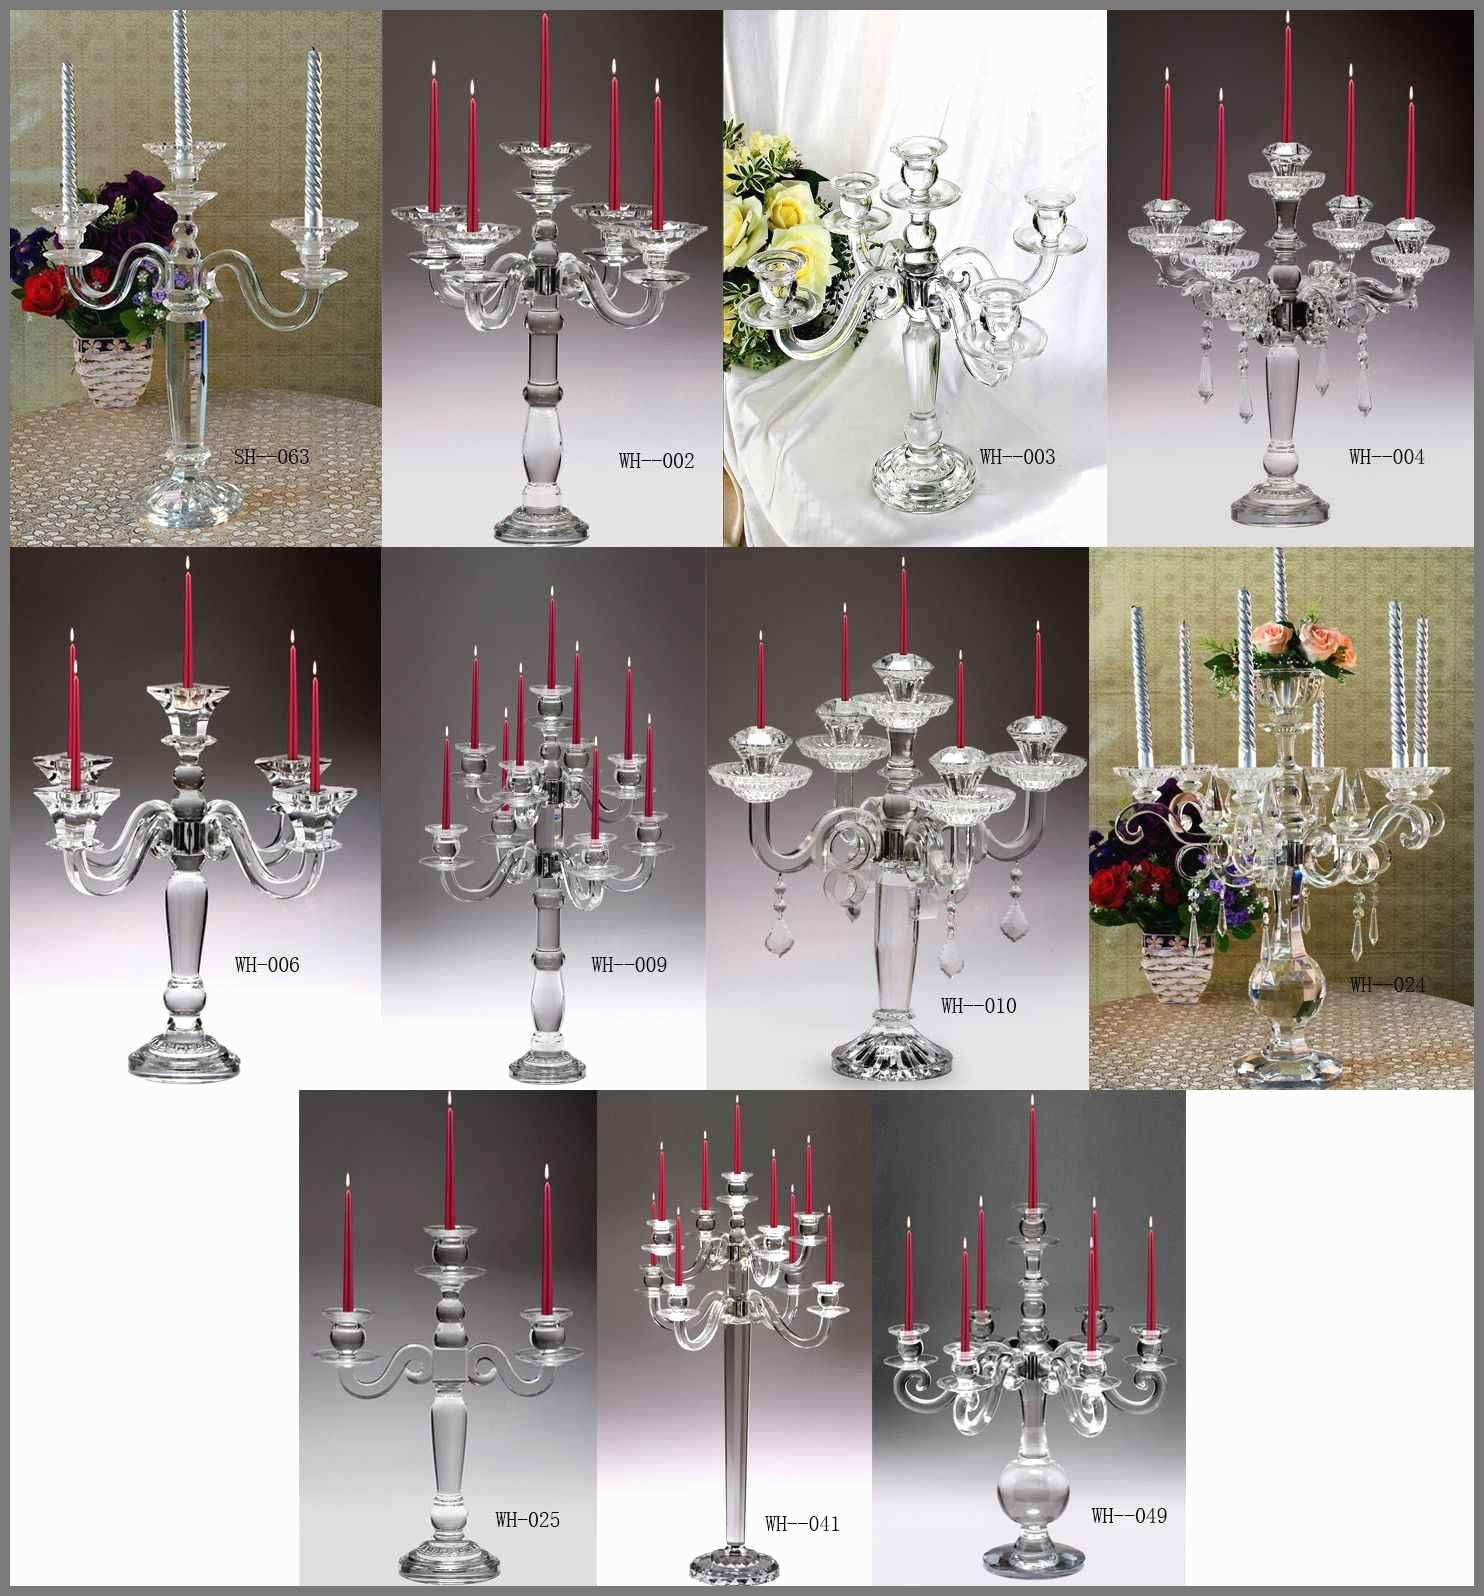 st louis crystal vase of church candelabra for sale prettier italib the best church images site pertaining to church candelabra for sale beautiful faux crystal candle holders alive vases gold tall jpgi 0d cheap